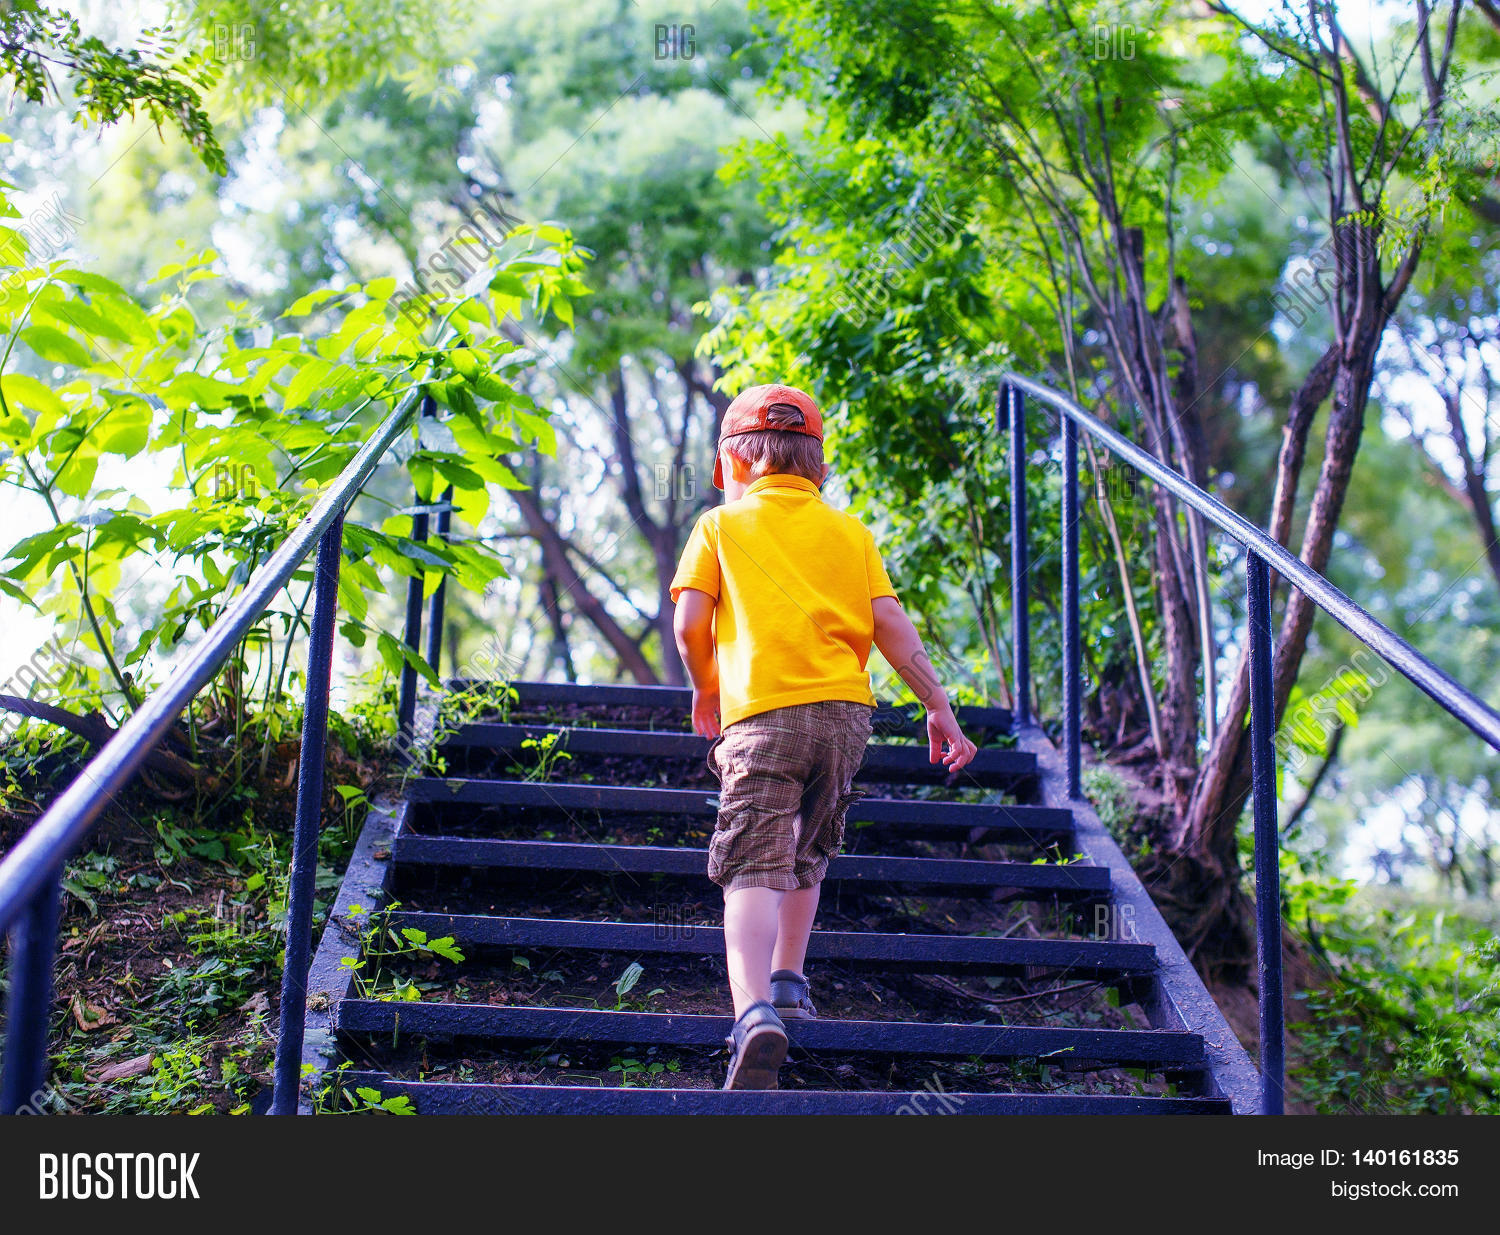 Toddler Climbs The Stairs In The Park. Concept Of Growing Up. Step By Step